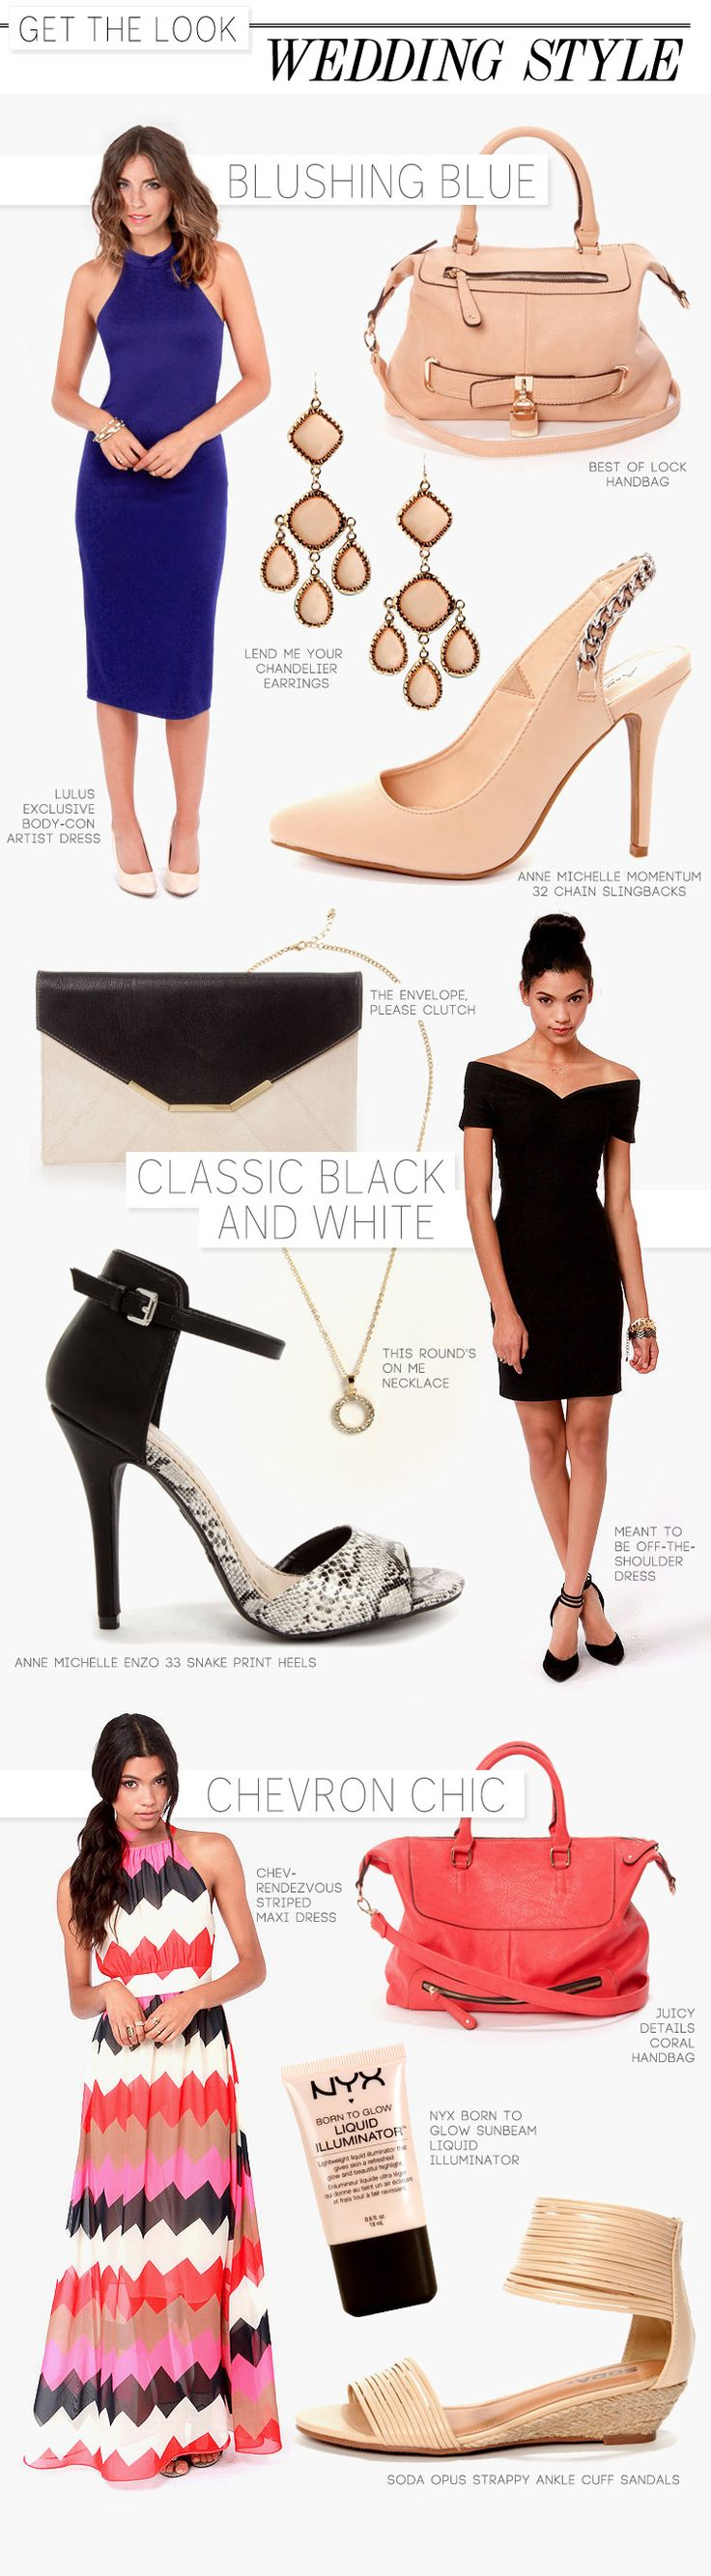 Get the Look: Wedding Guest Style via lulus.com